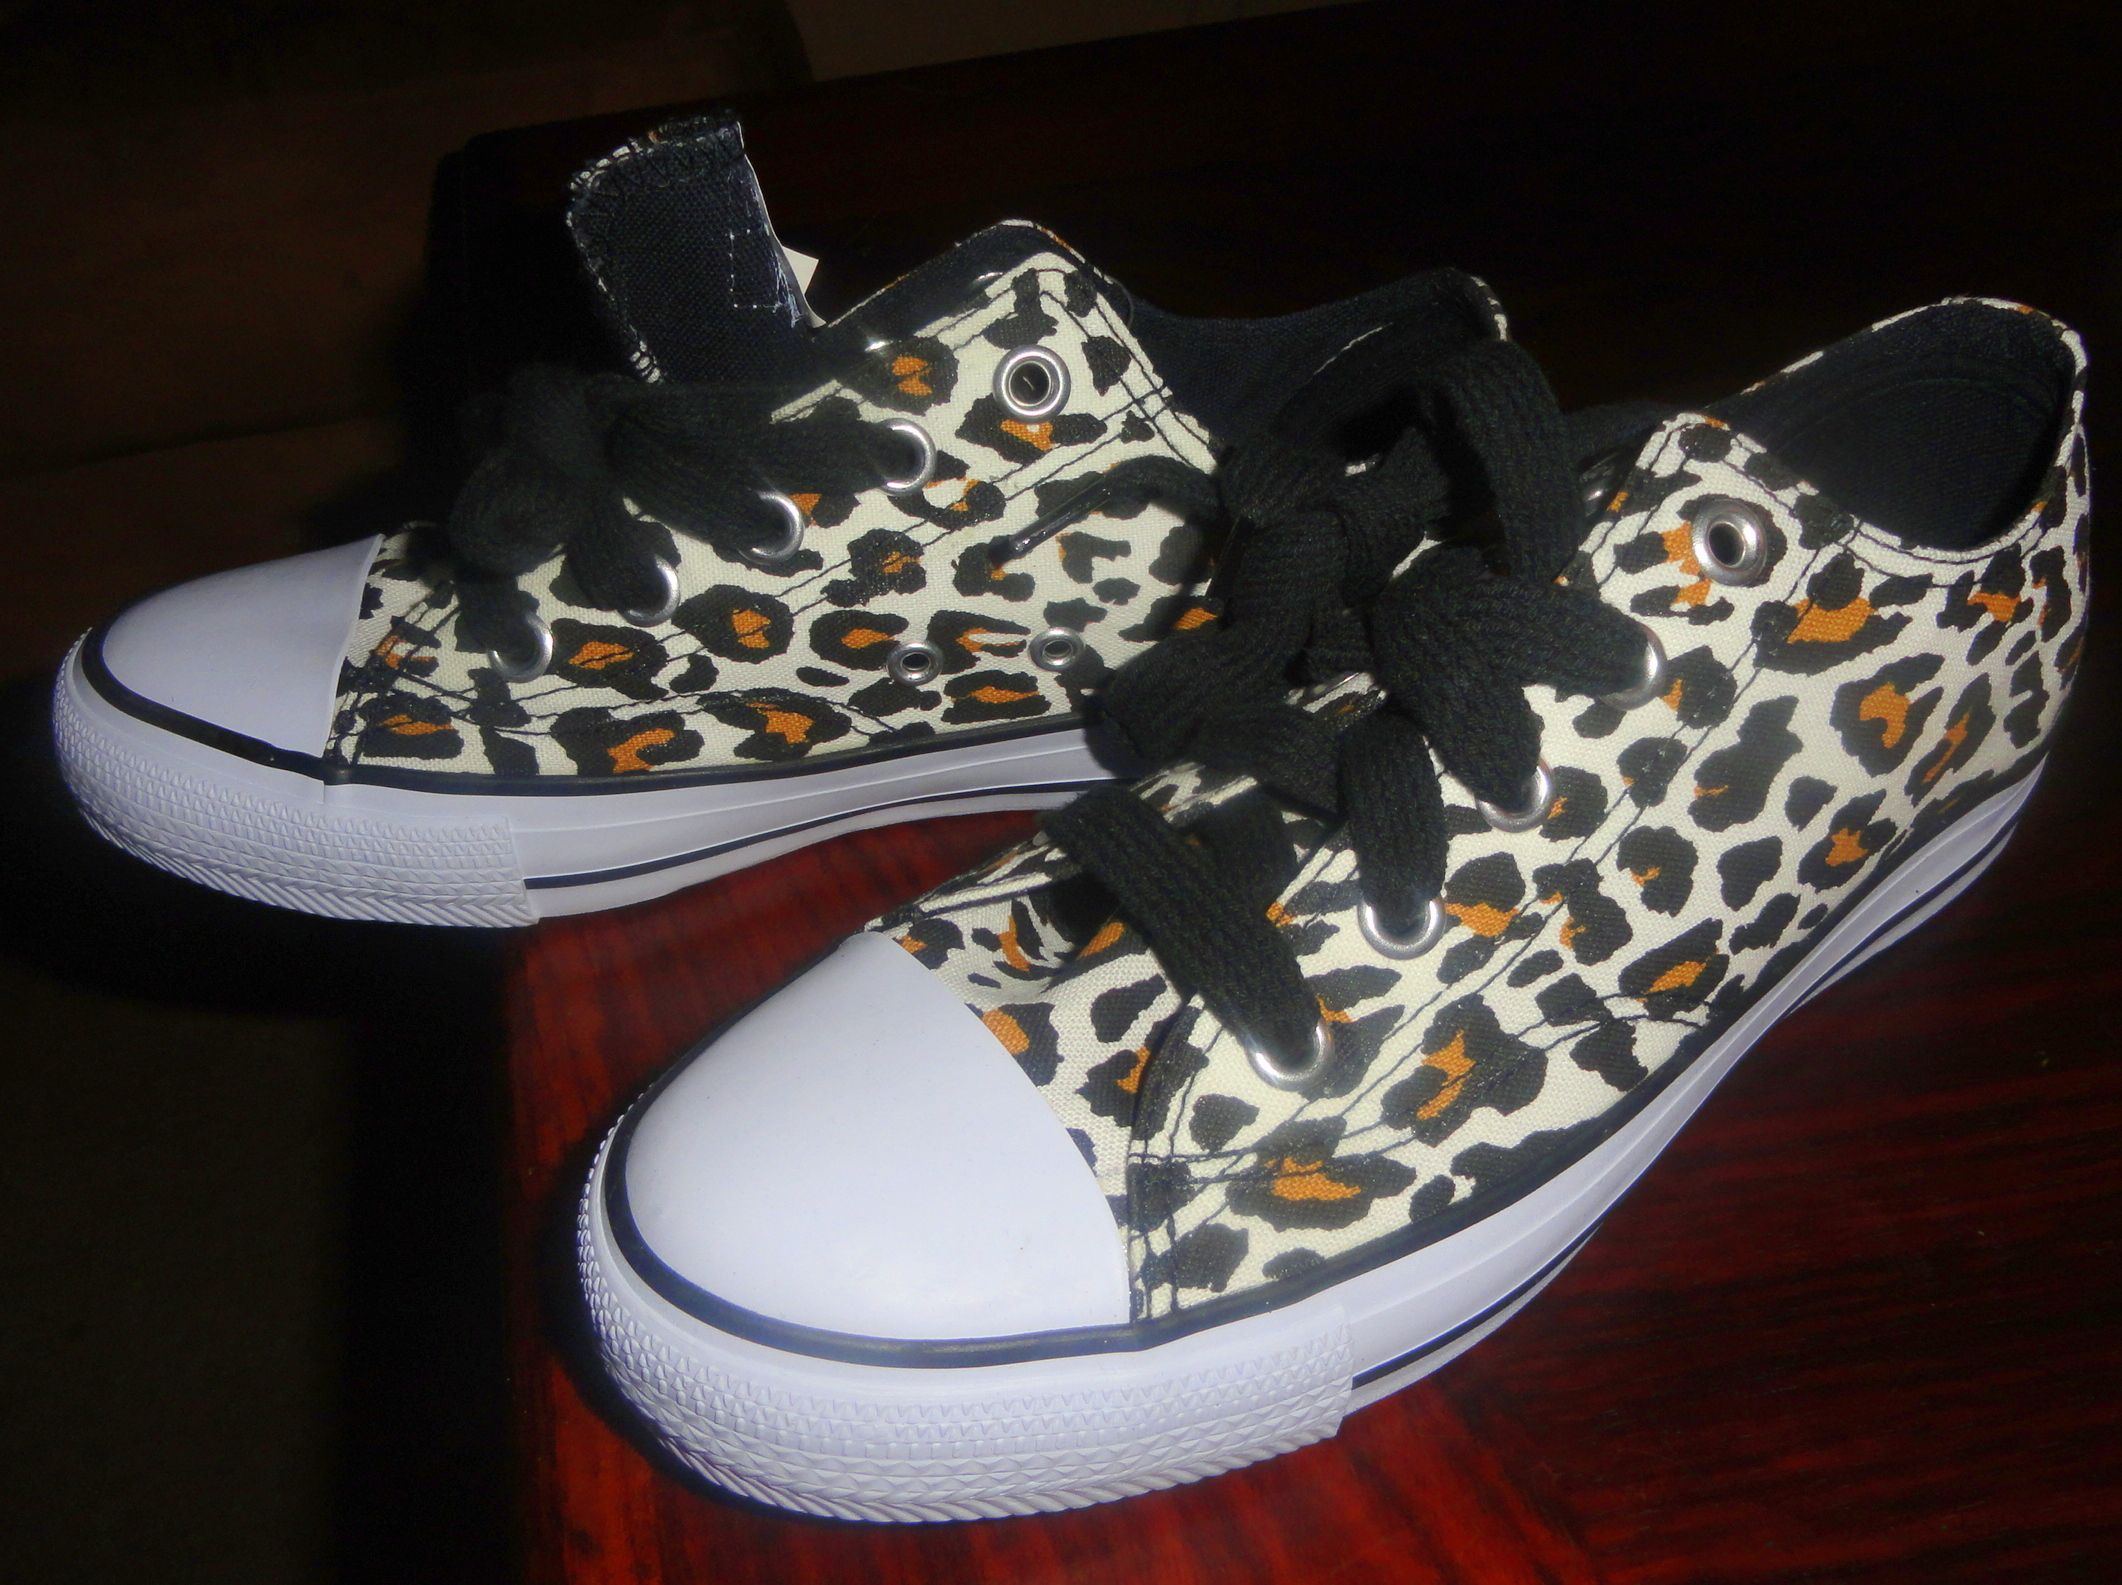 Animal-print sneakers from Payless Shoe